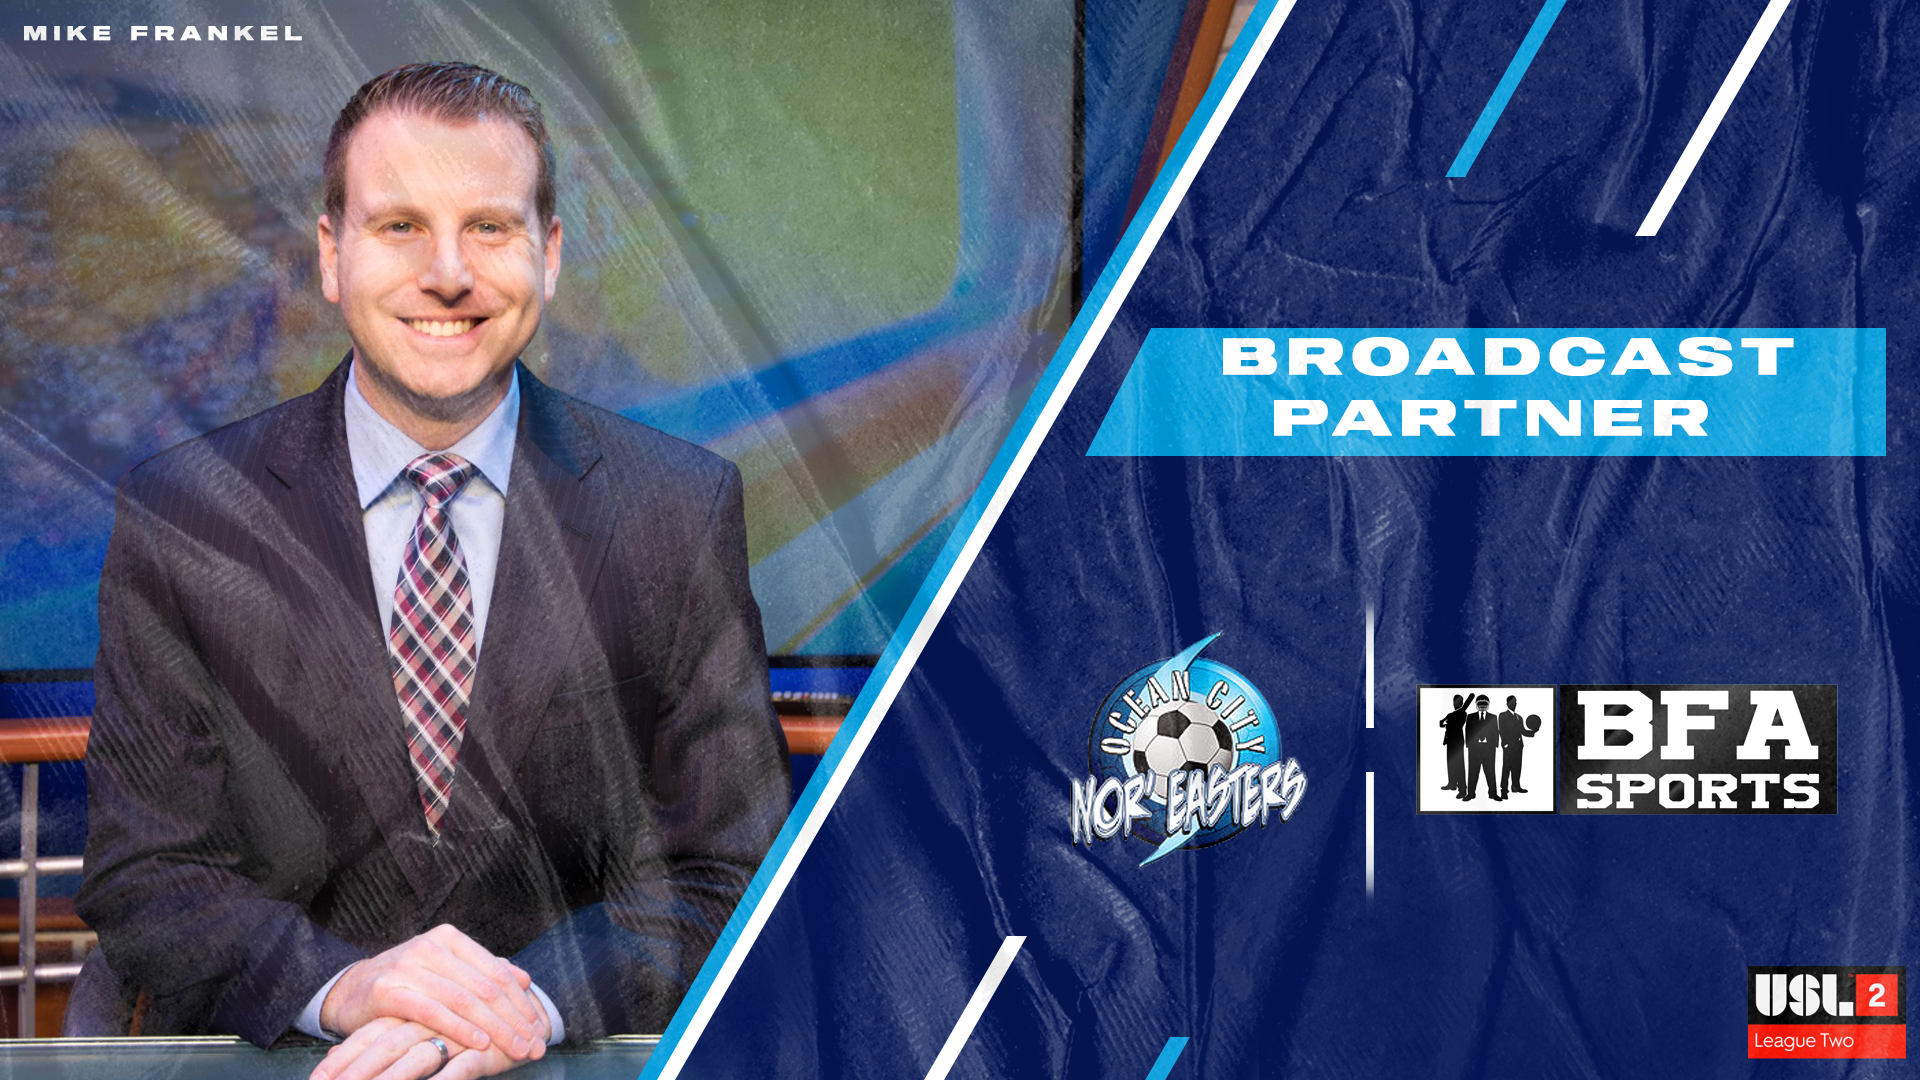 Nor'easters announce 2021 broadcast partner: BFA Productions